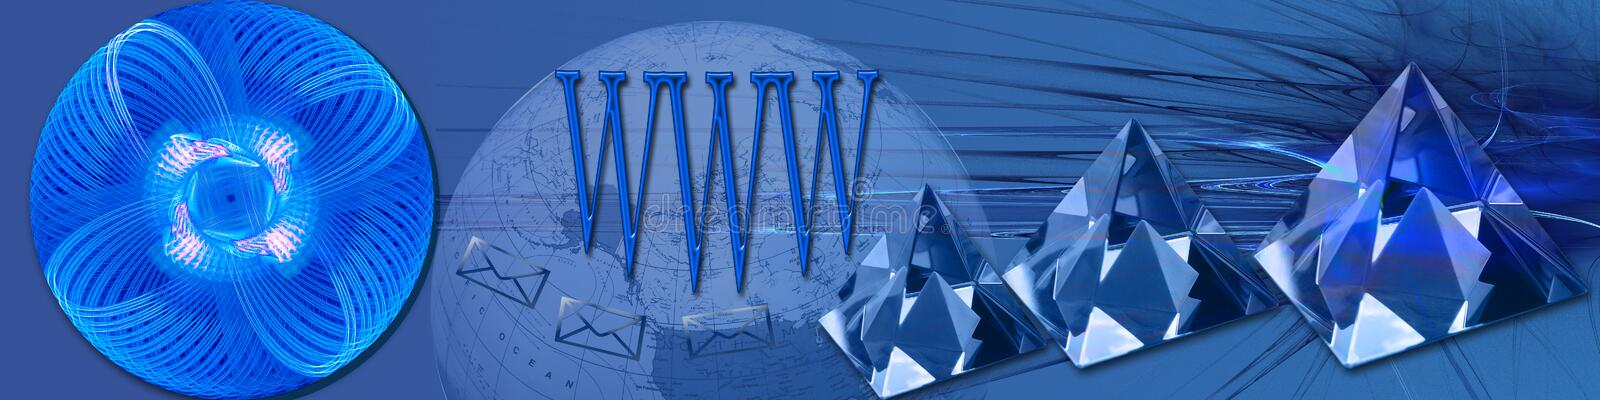 World wide crystal clear connections. This banner / header in blue tones has a creative abstract background. The crystals, WWW, envelopes and the round abstract royalty free illustration